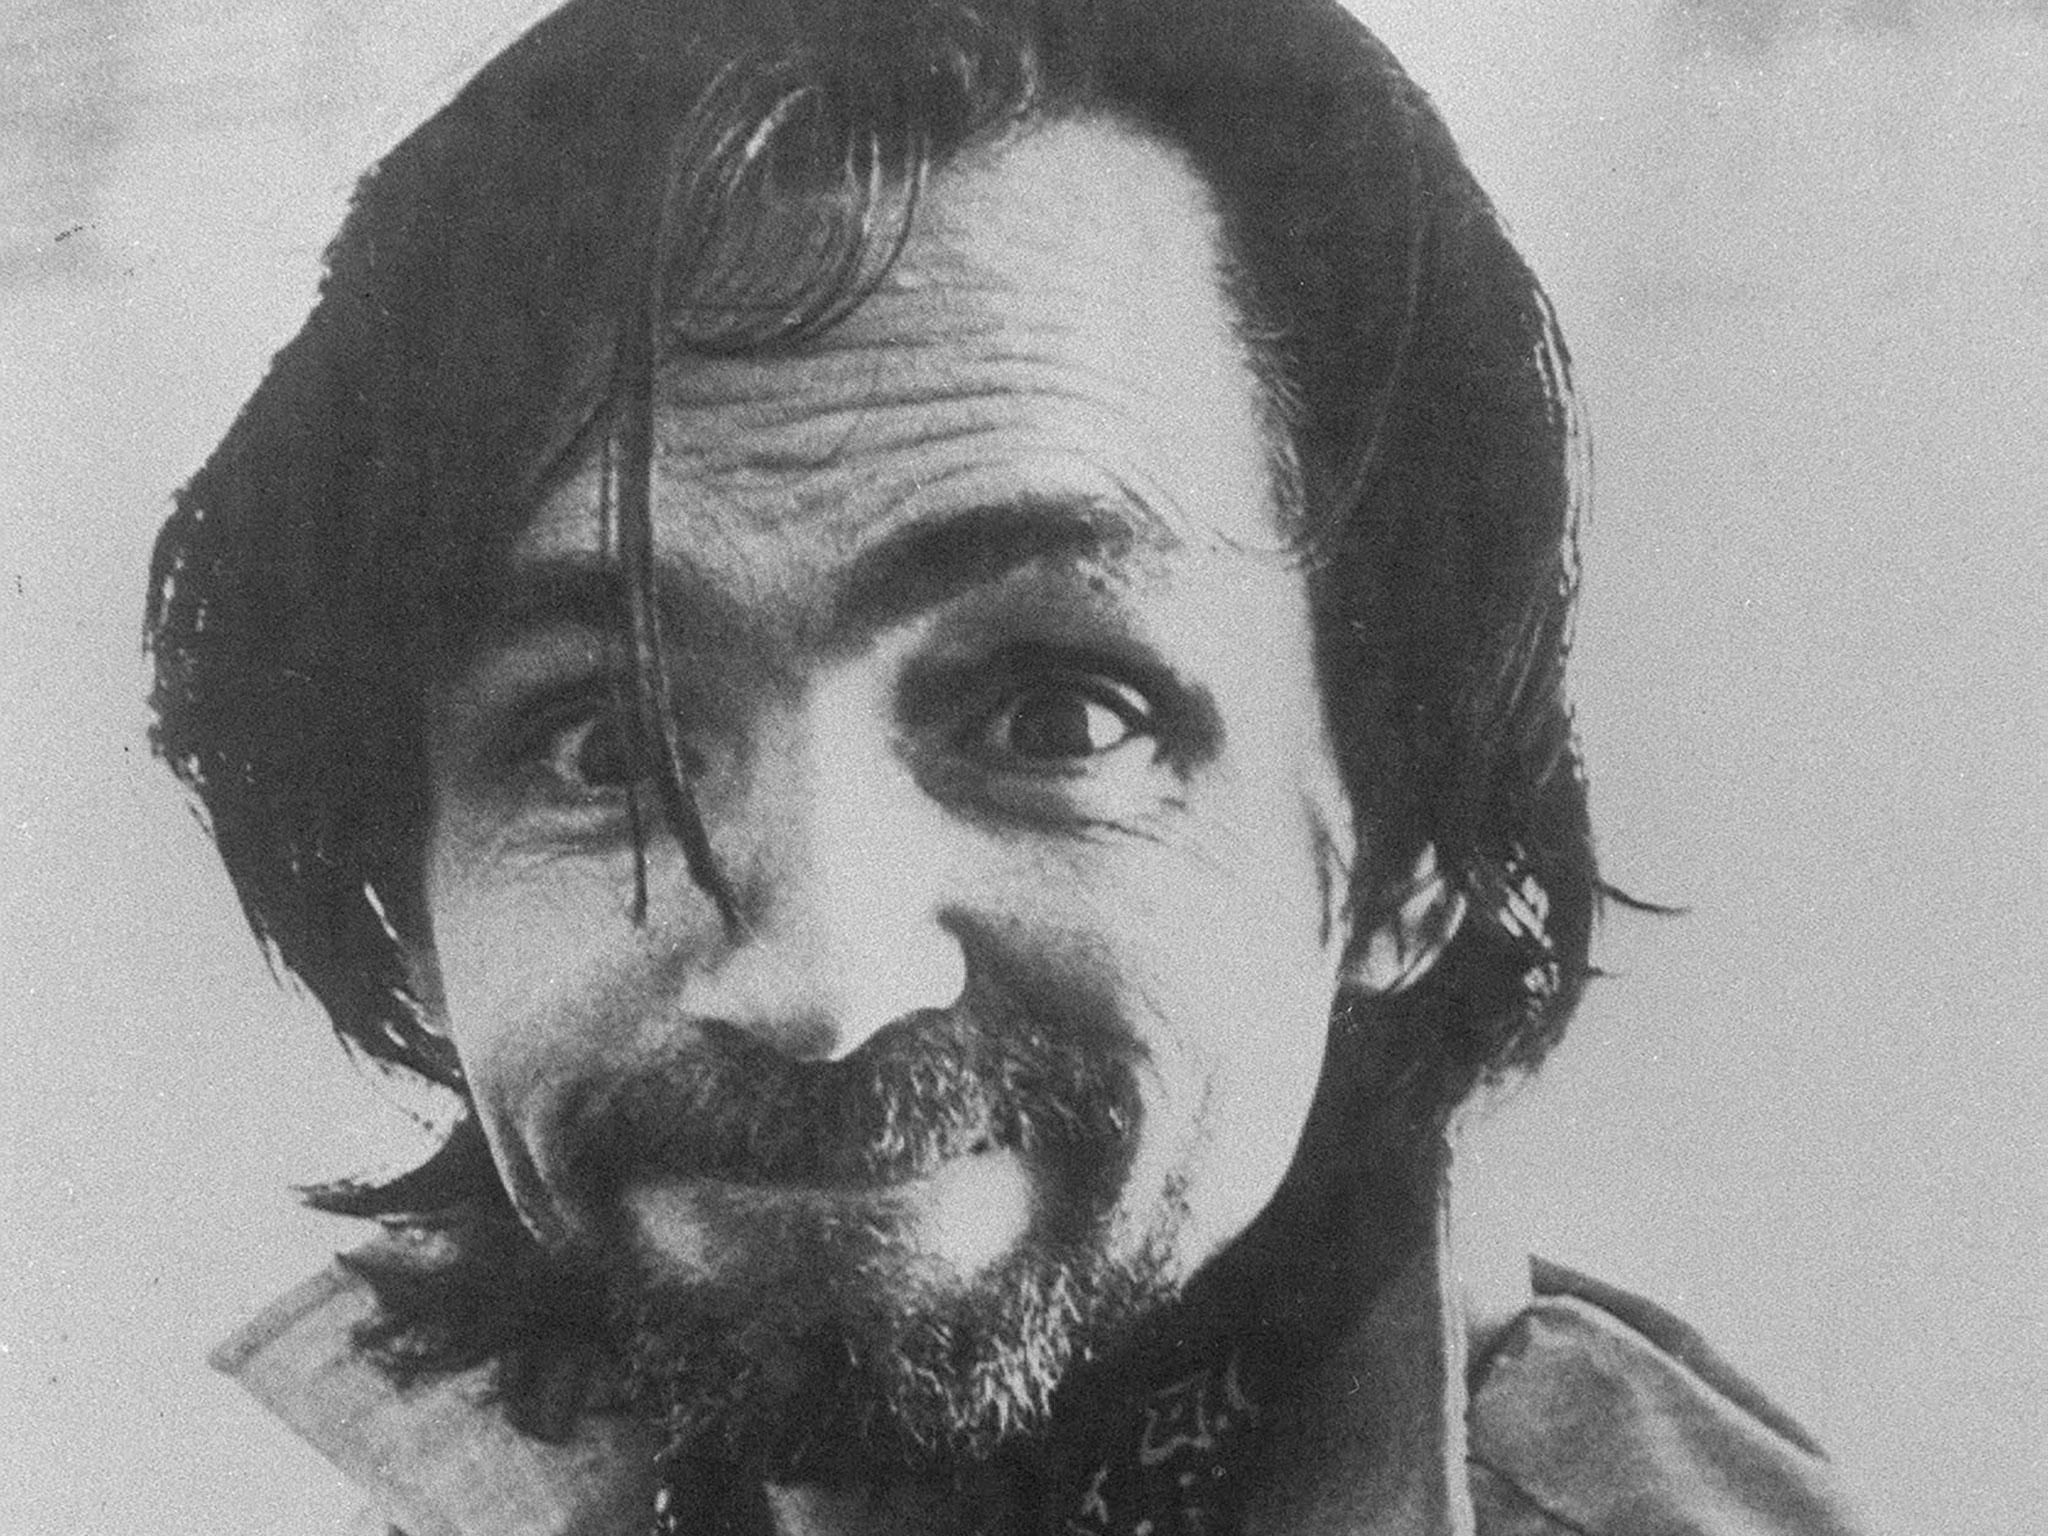 Charles Manson: Who was the infamous cult leader and what